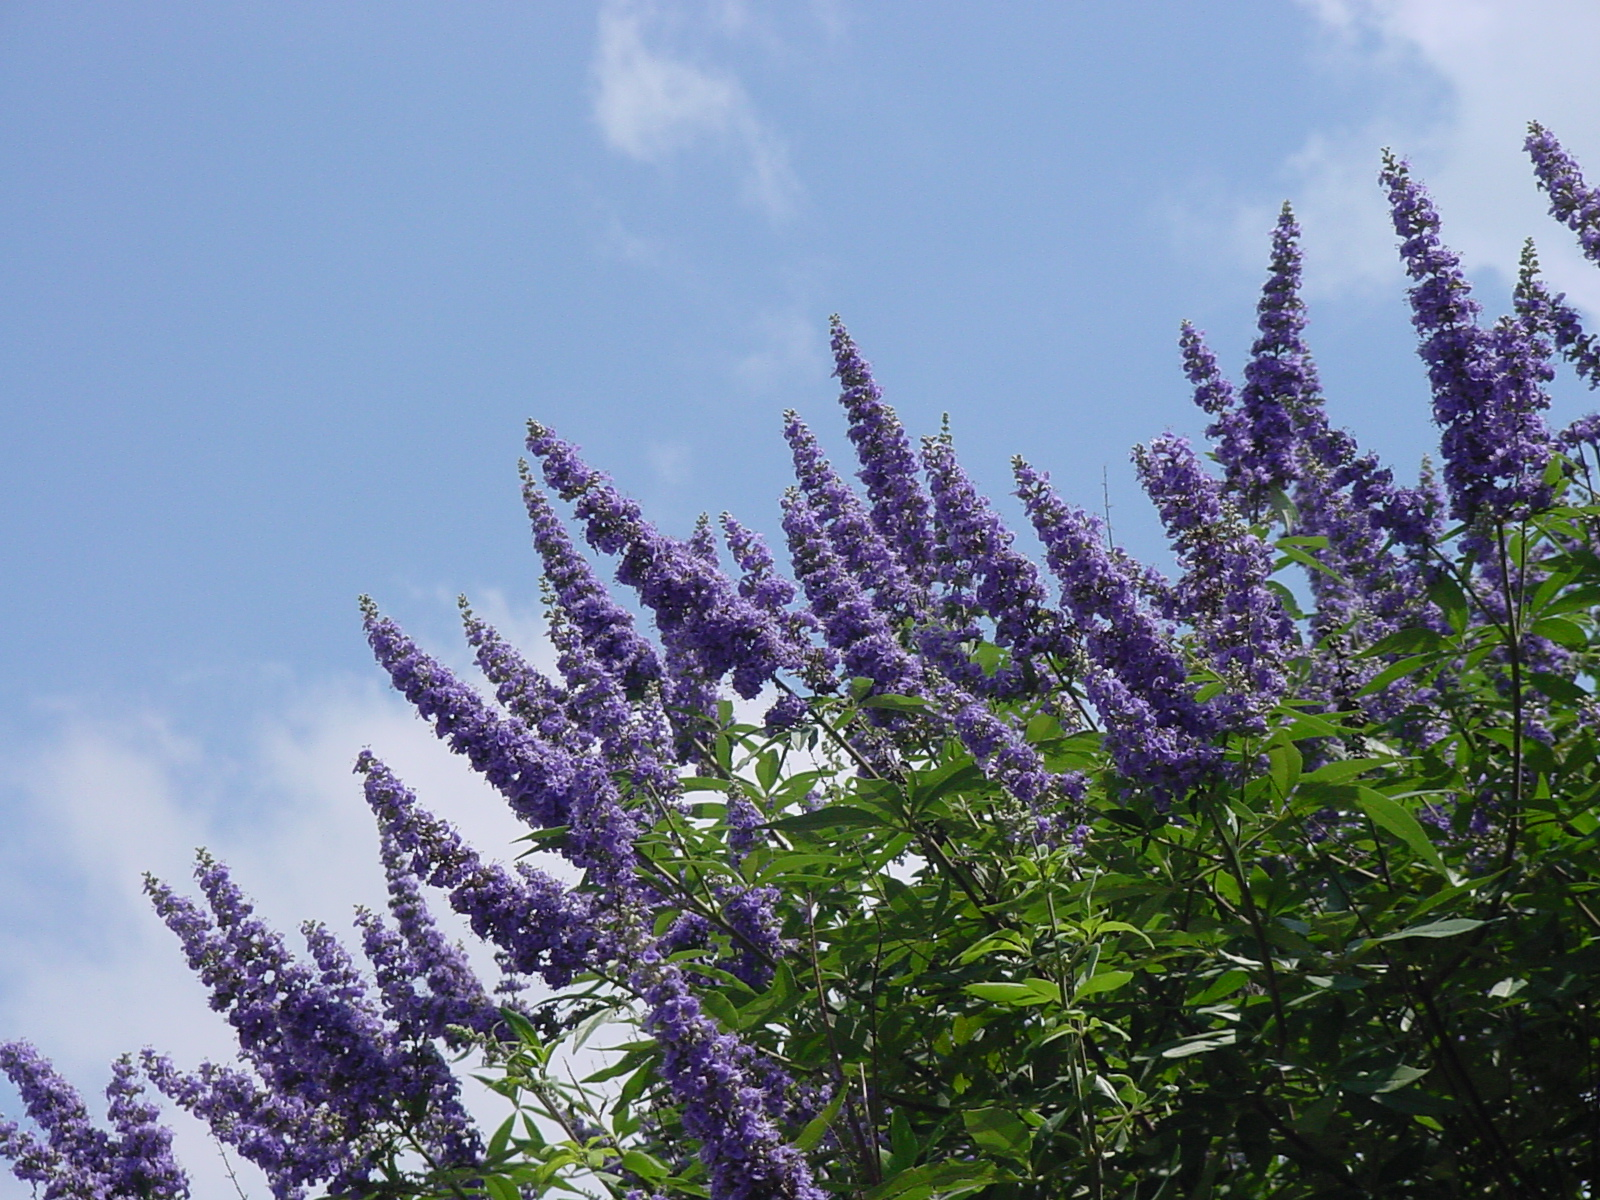 Plantanswers plant answers 12 months of watersaver landscape texas lilac vitex izmirmasajfo